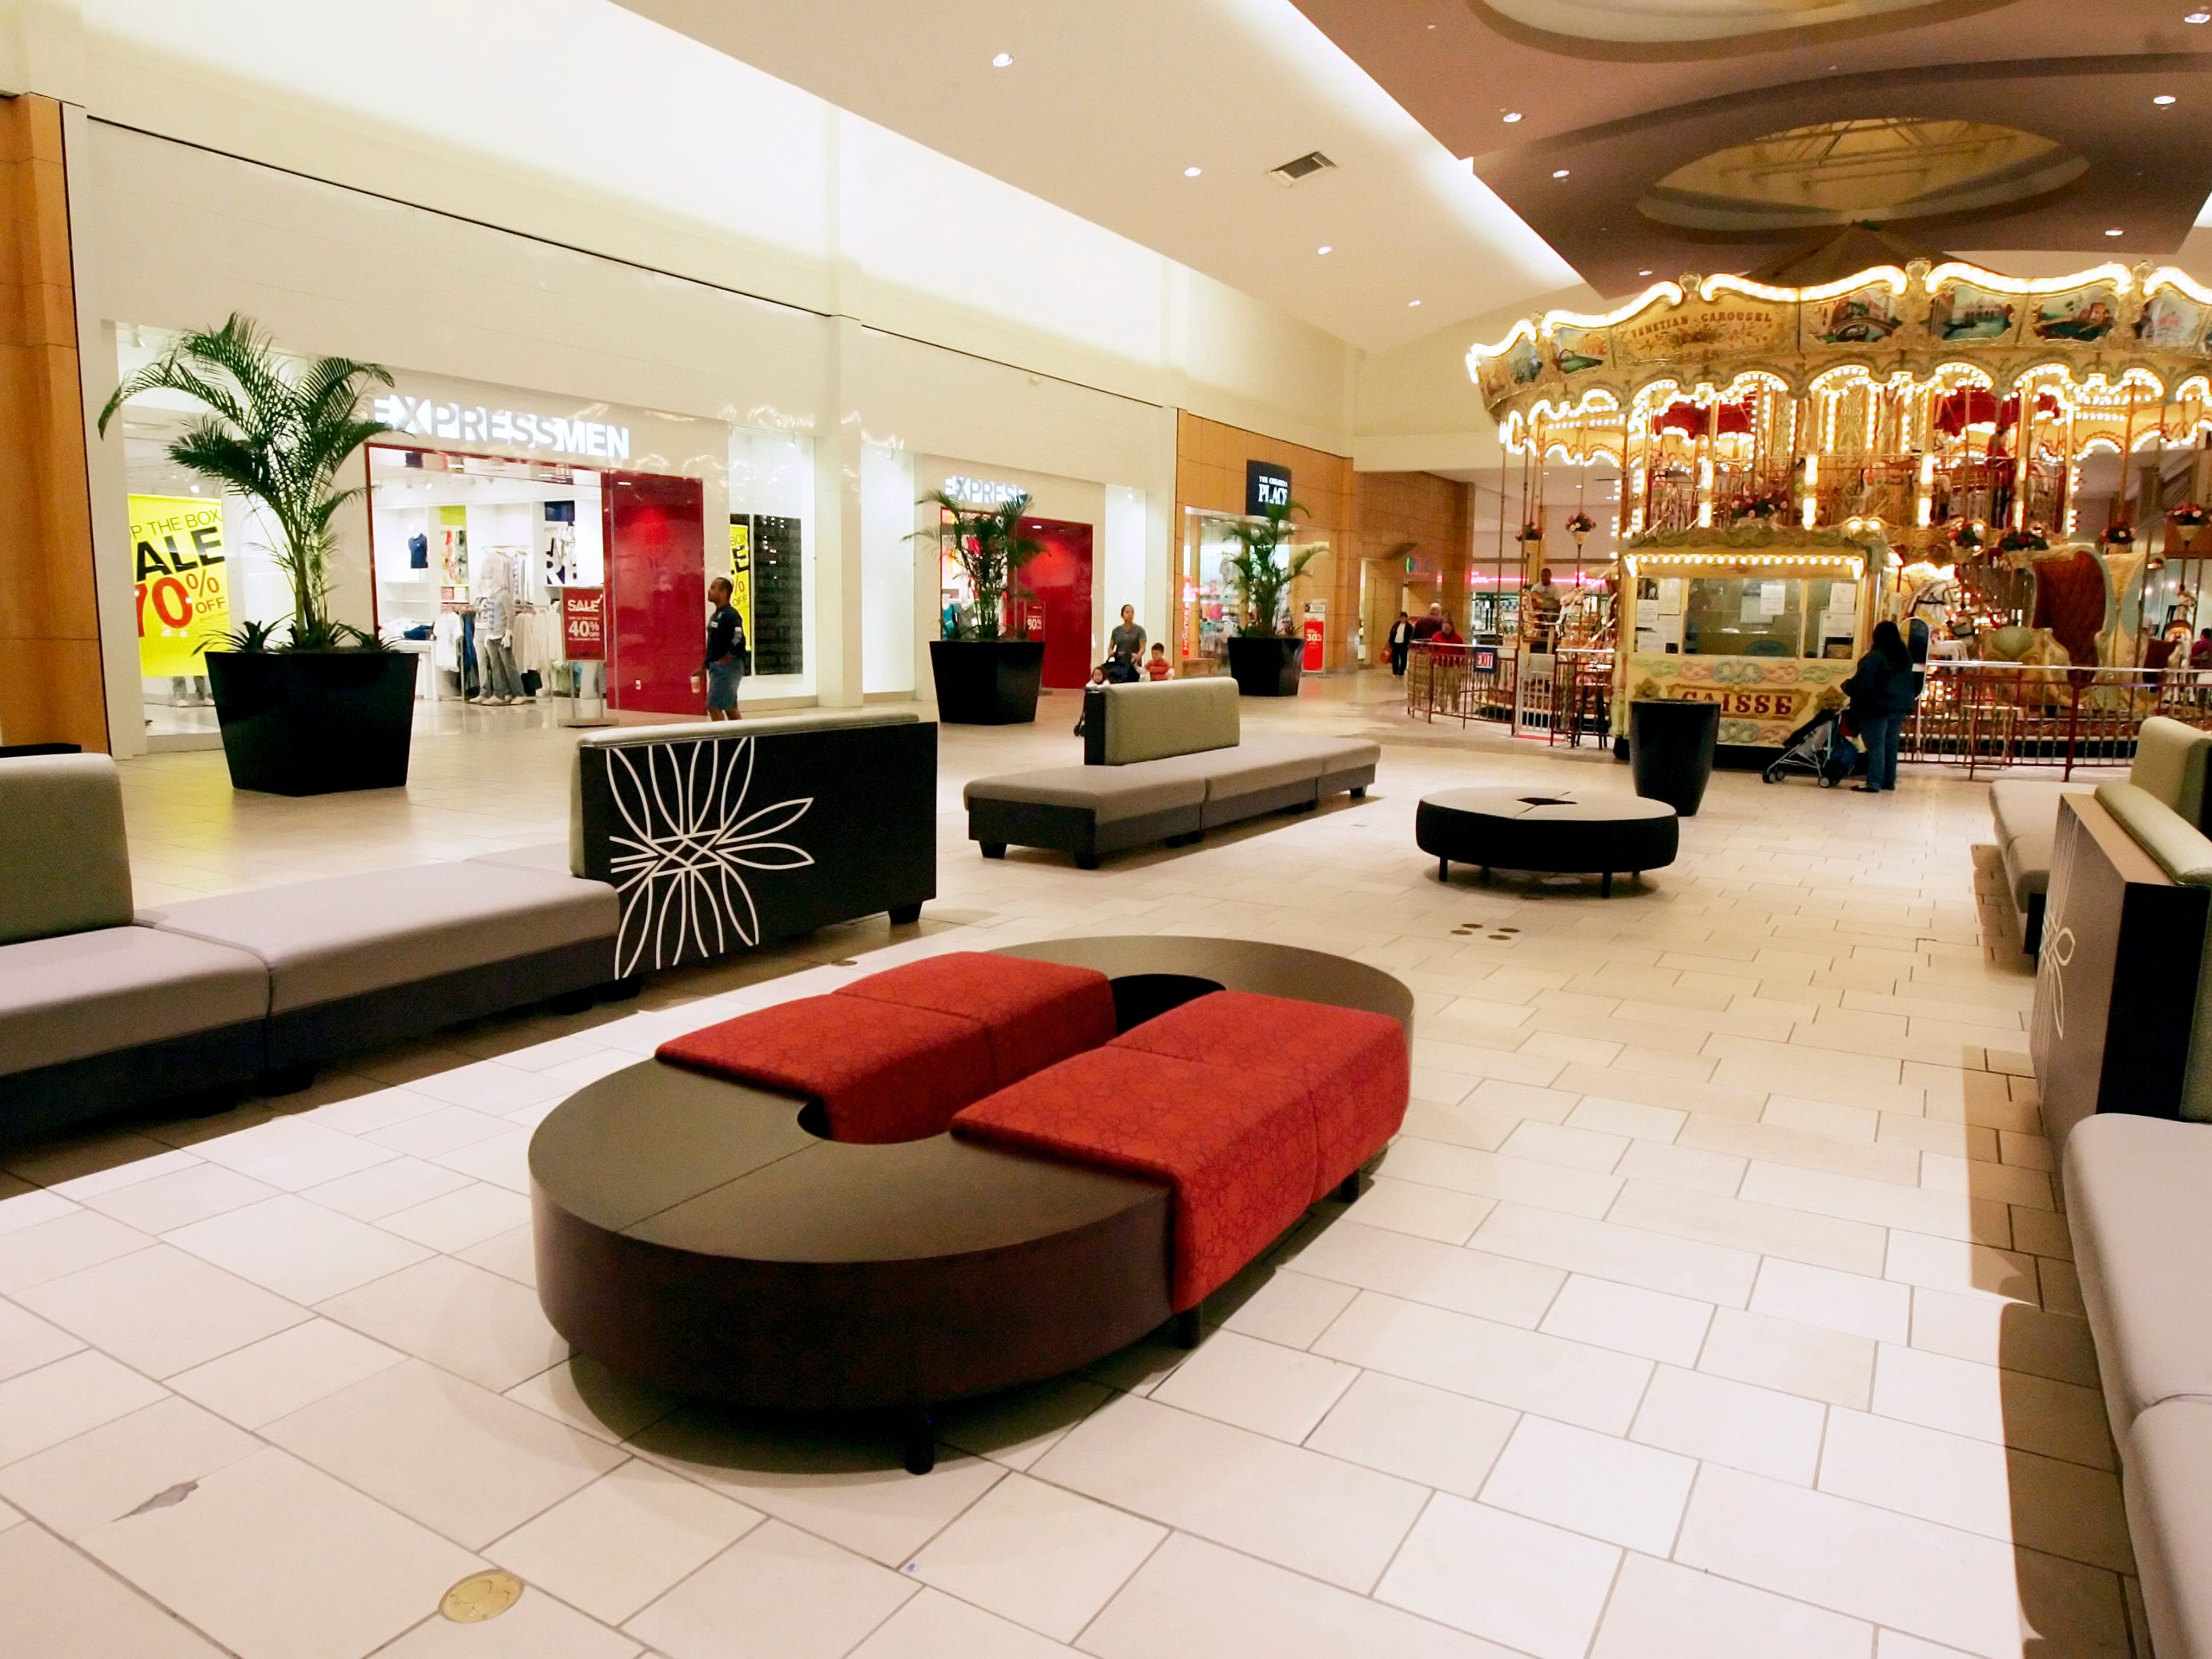 New, custom-built furniture was added in January 2009 as part of the upgrades planned for the mall's center court as owners work on phase 2 of their $50-million renovations at La Palmera in Corpus Christi. A water feature replaced the carousel.